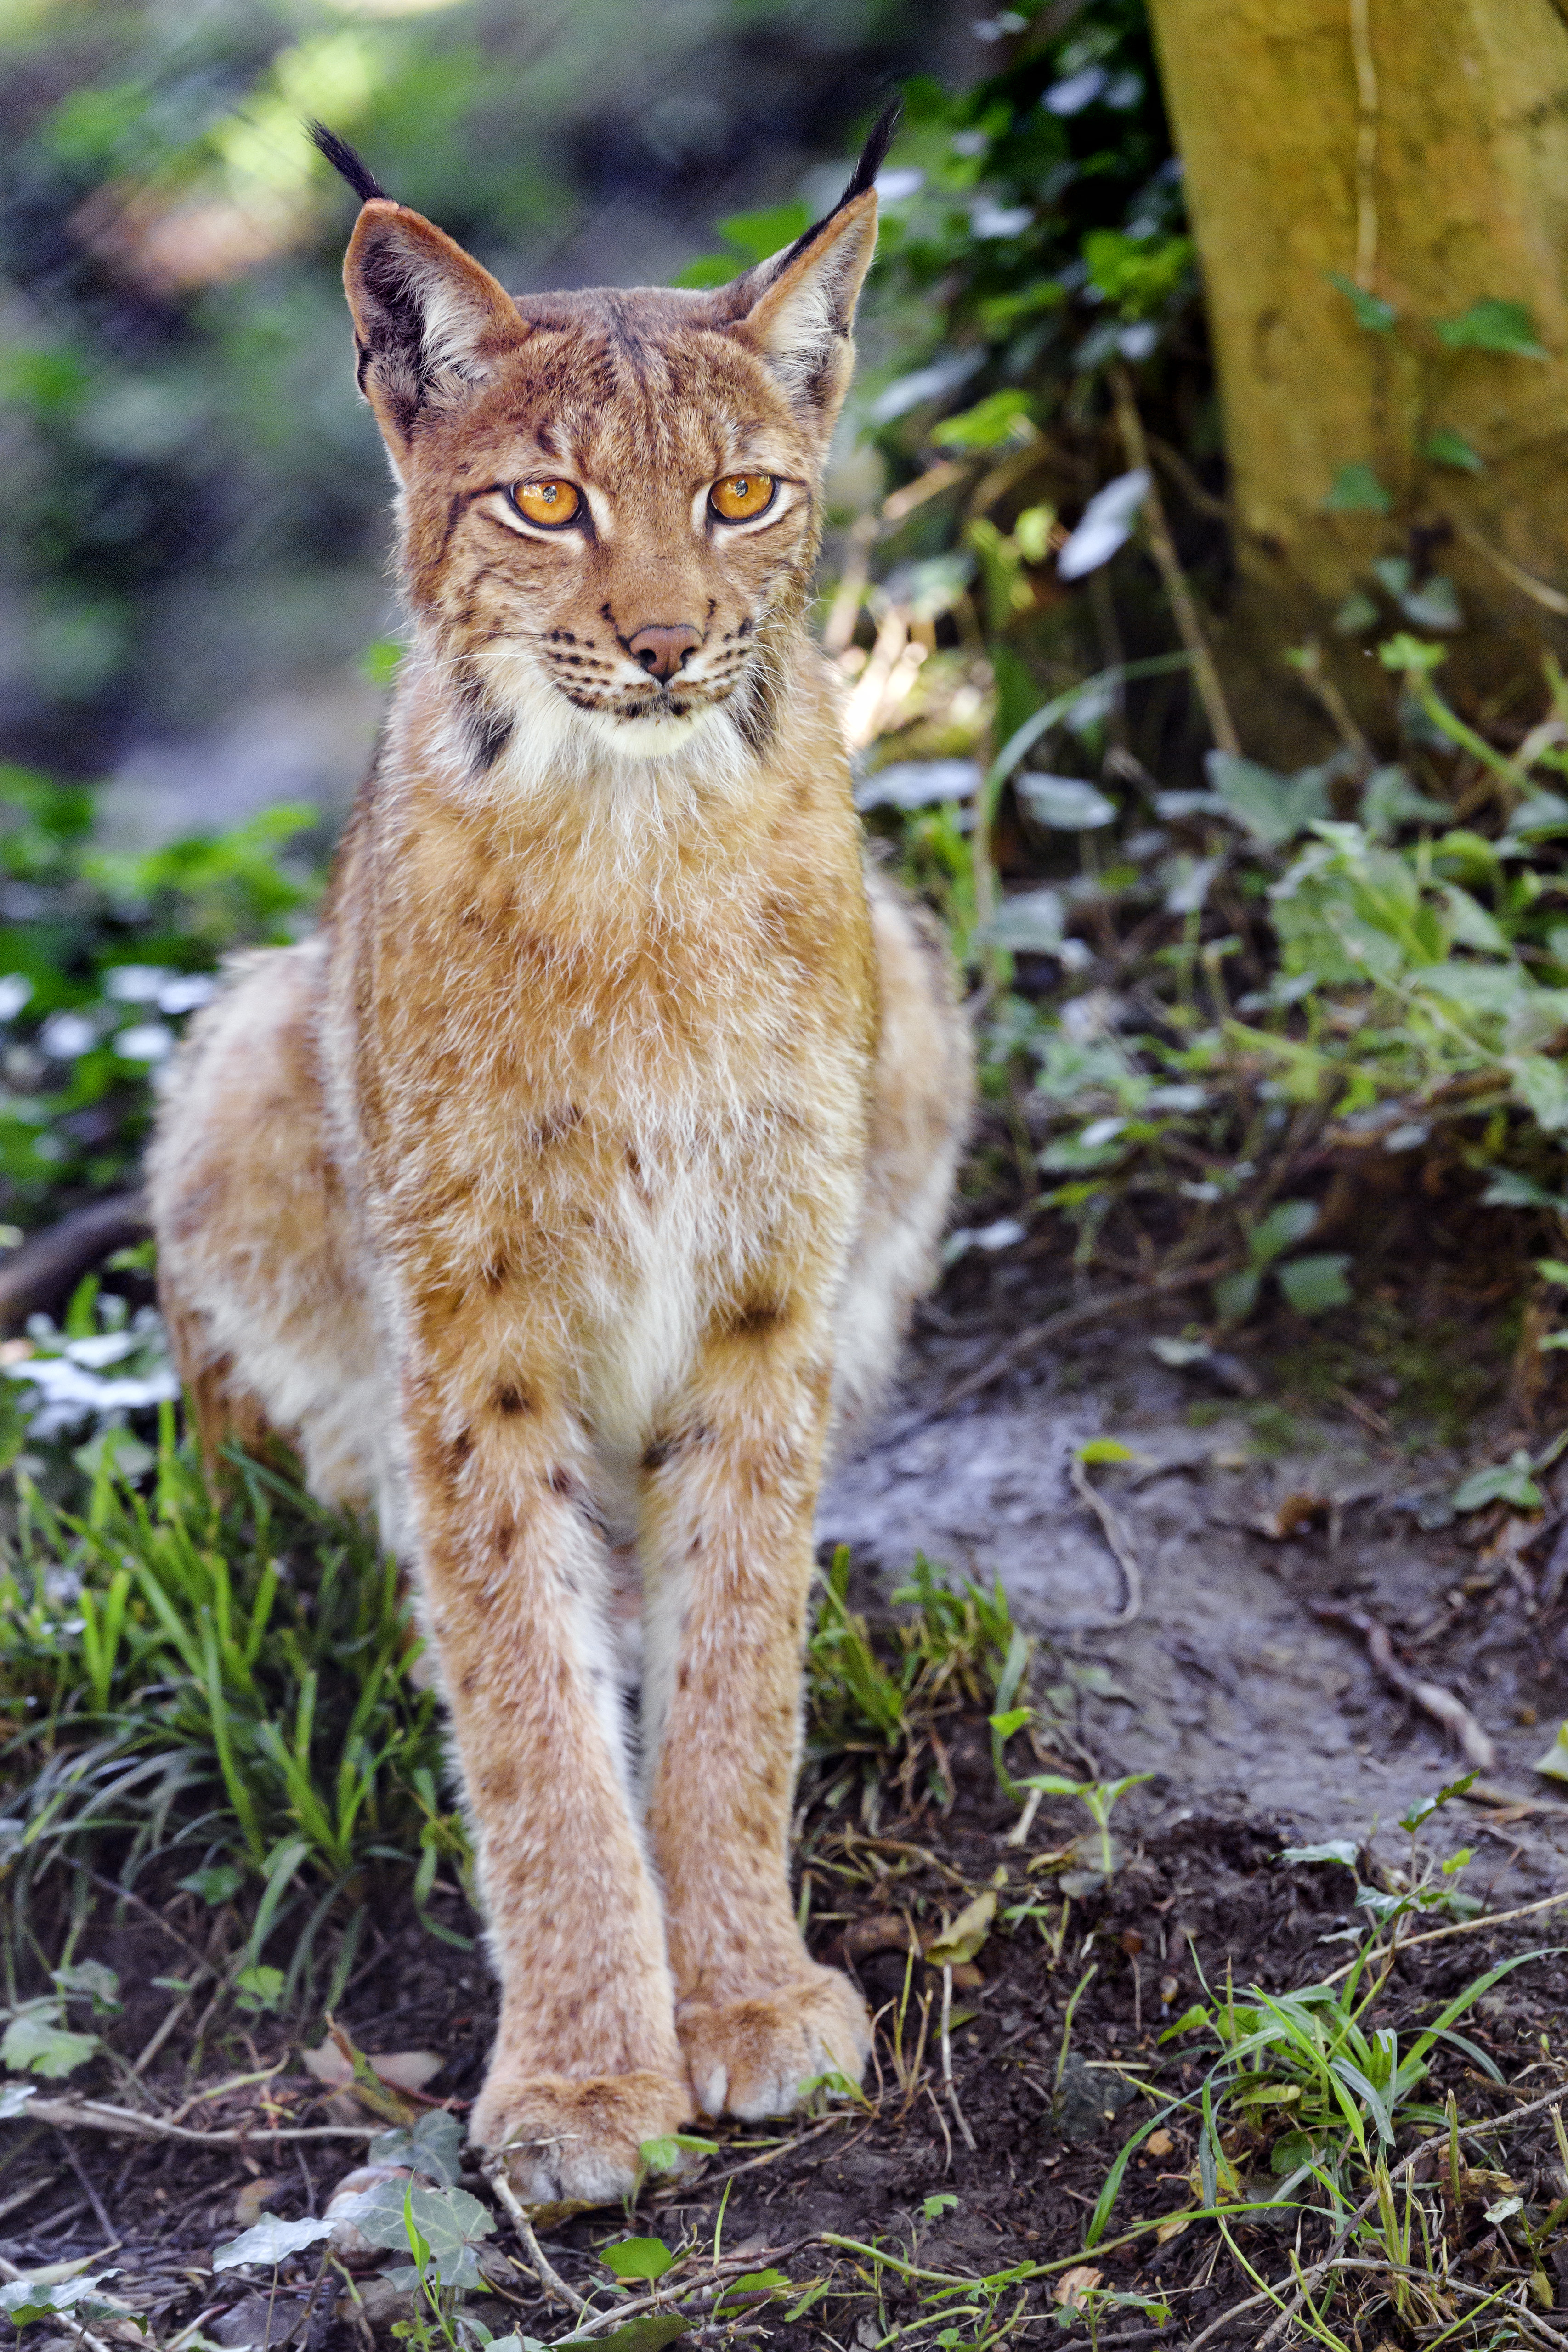 107819 download wallpaper Animals, Iris, Big Cat, Animal, Sight, Opinion, Grass screensavers and pictures for free